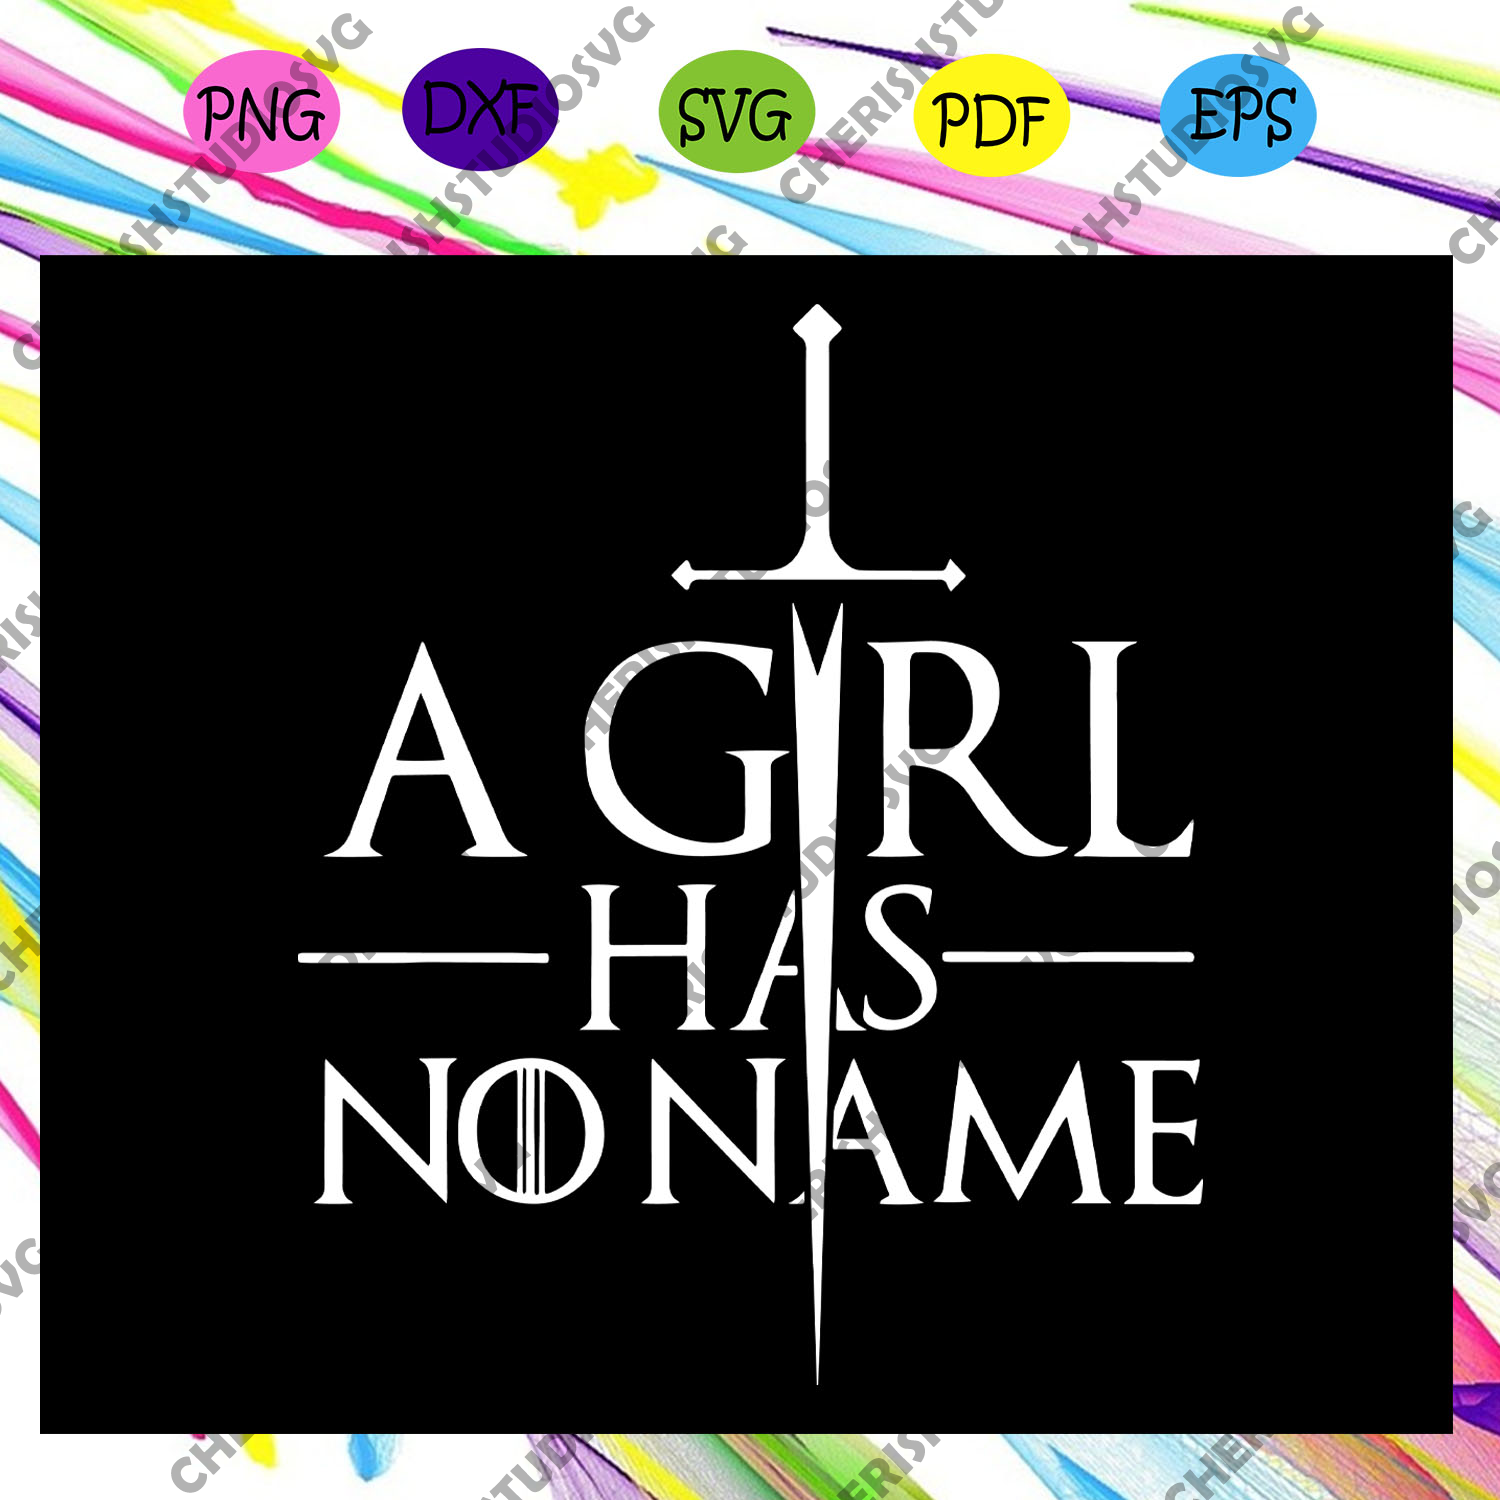 A girl has no name, game of thrones, game of thrones gift, game of thrones svg, game thrones lover,trending svg Files For Silhouette, Files For Cricut, SVG, DXF, EPS, PNG, Instant Download